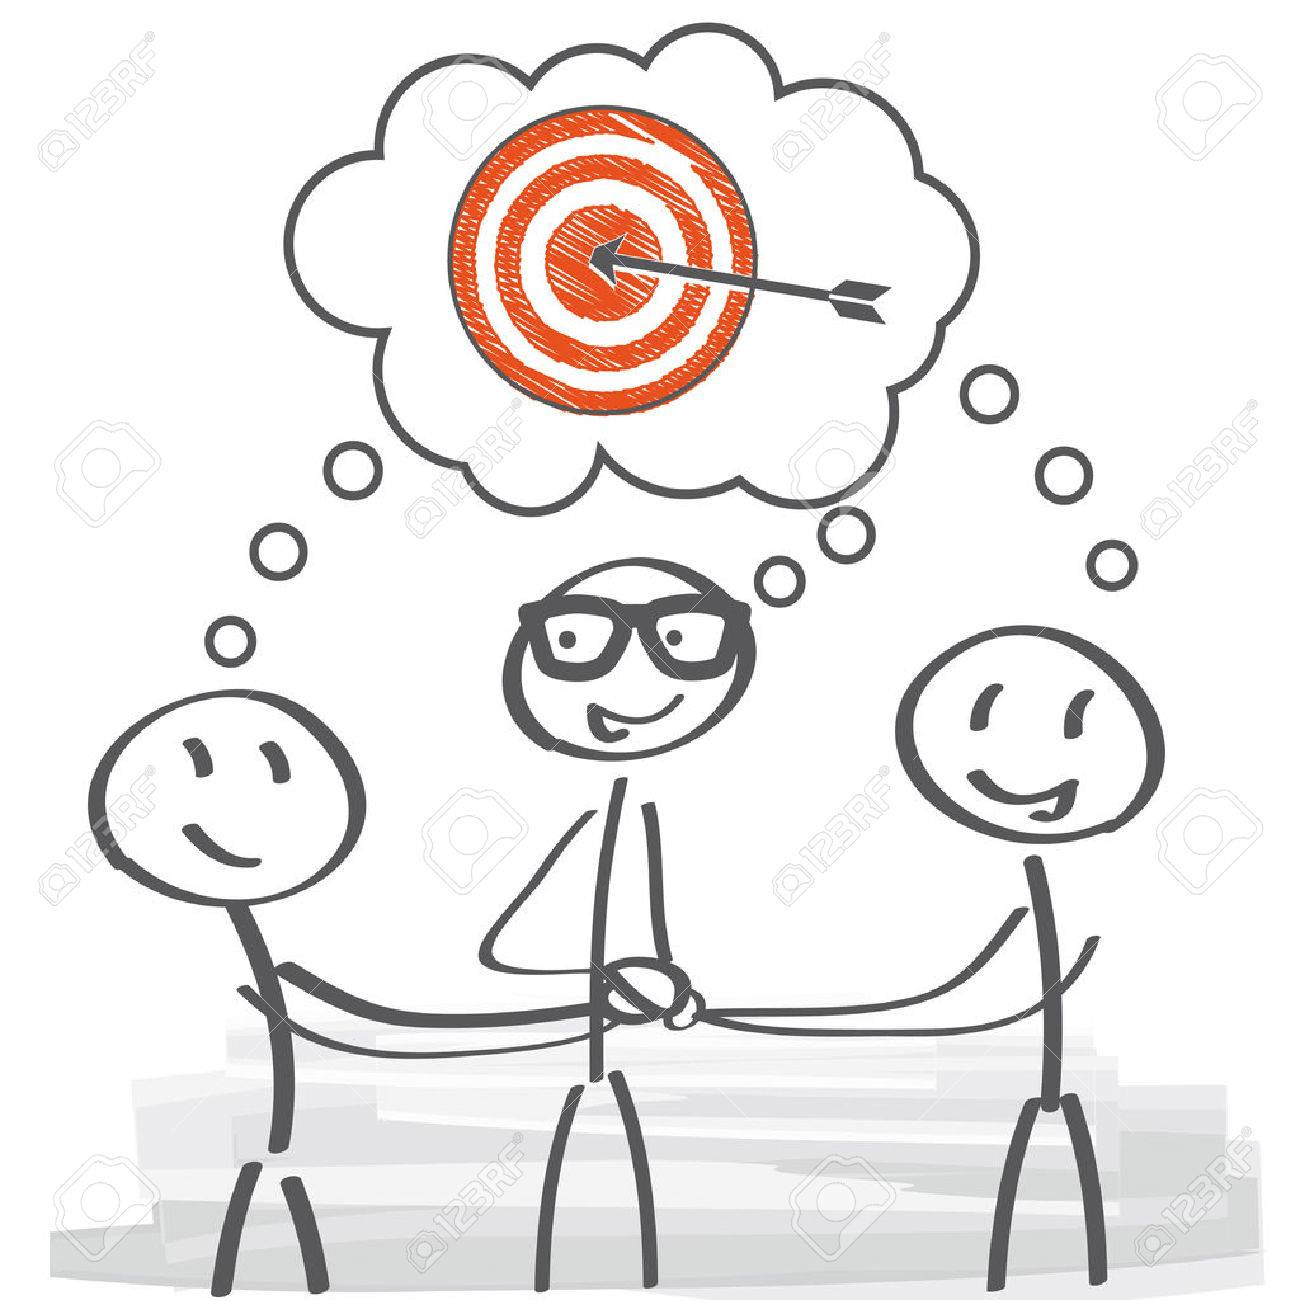 Build an effective Team to achieve your goals and objectives - 63947670